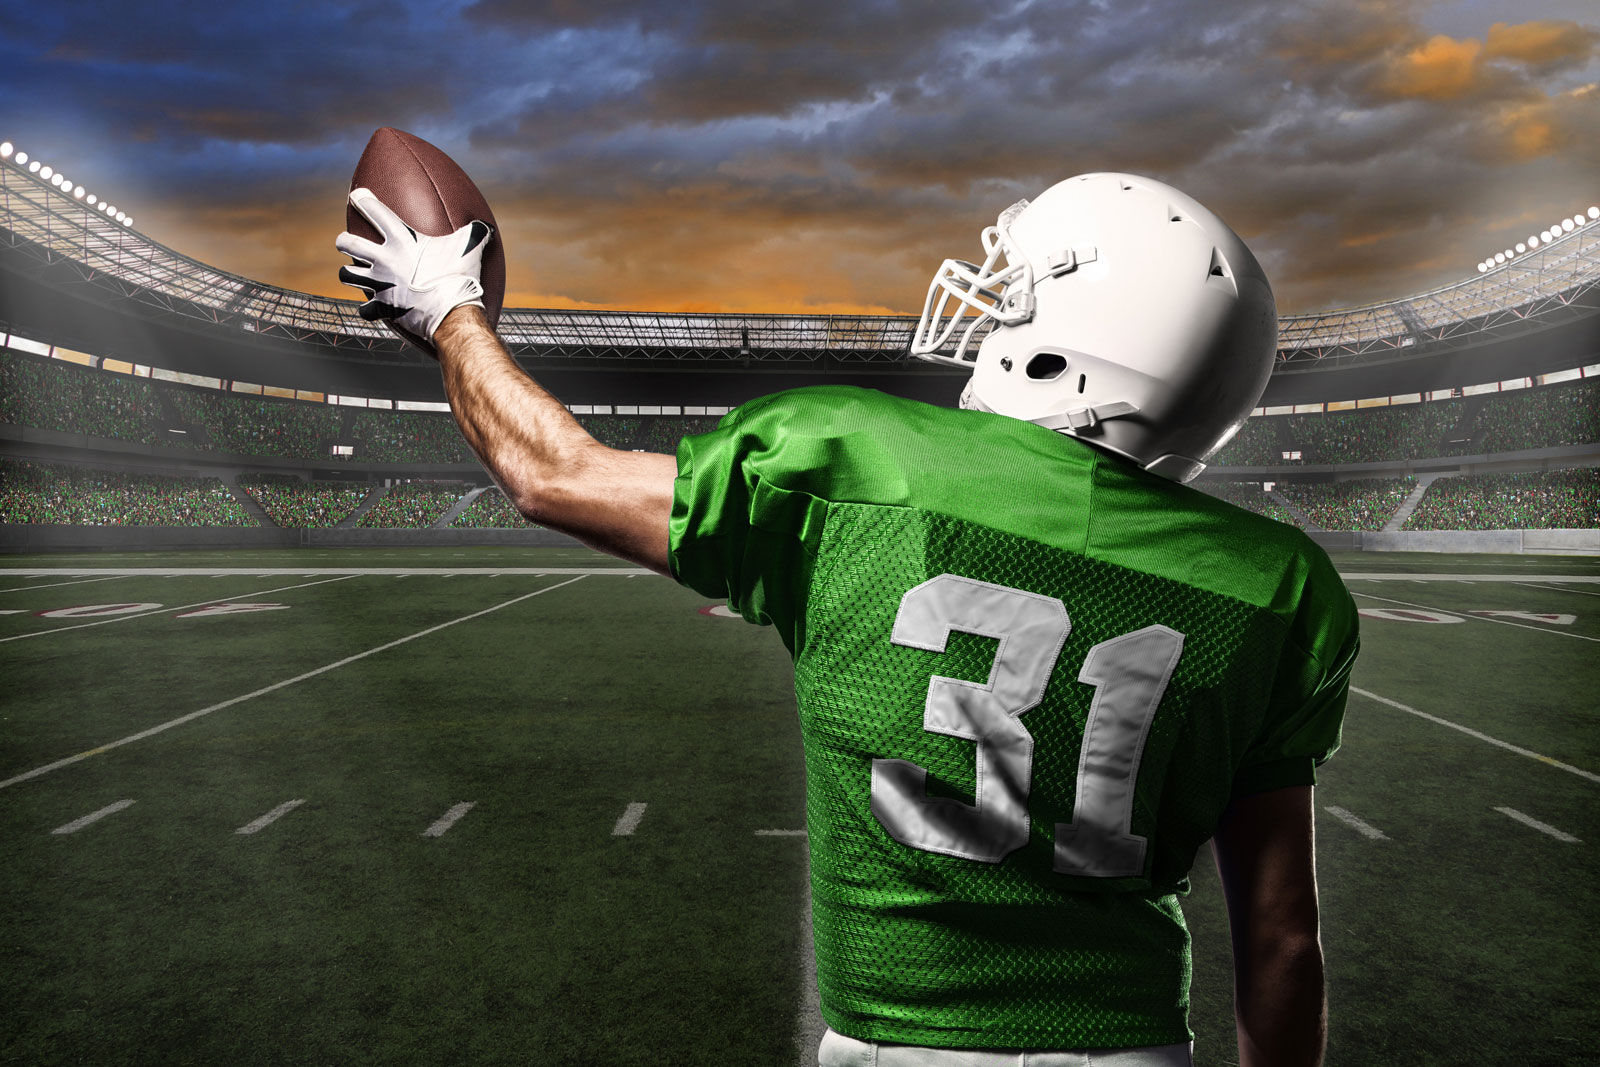 Calling all football fans. The Saskatchewan Roughriders 2019 season opener is around the corner. Catch all the Rider action when staying at hotels in Regina near Mosaic Stadium.